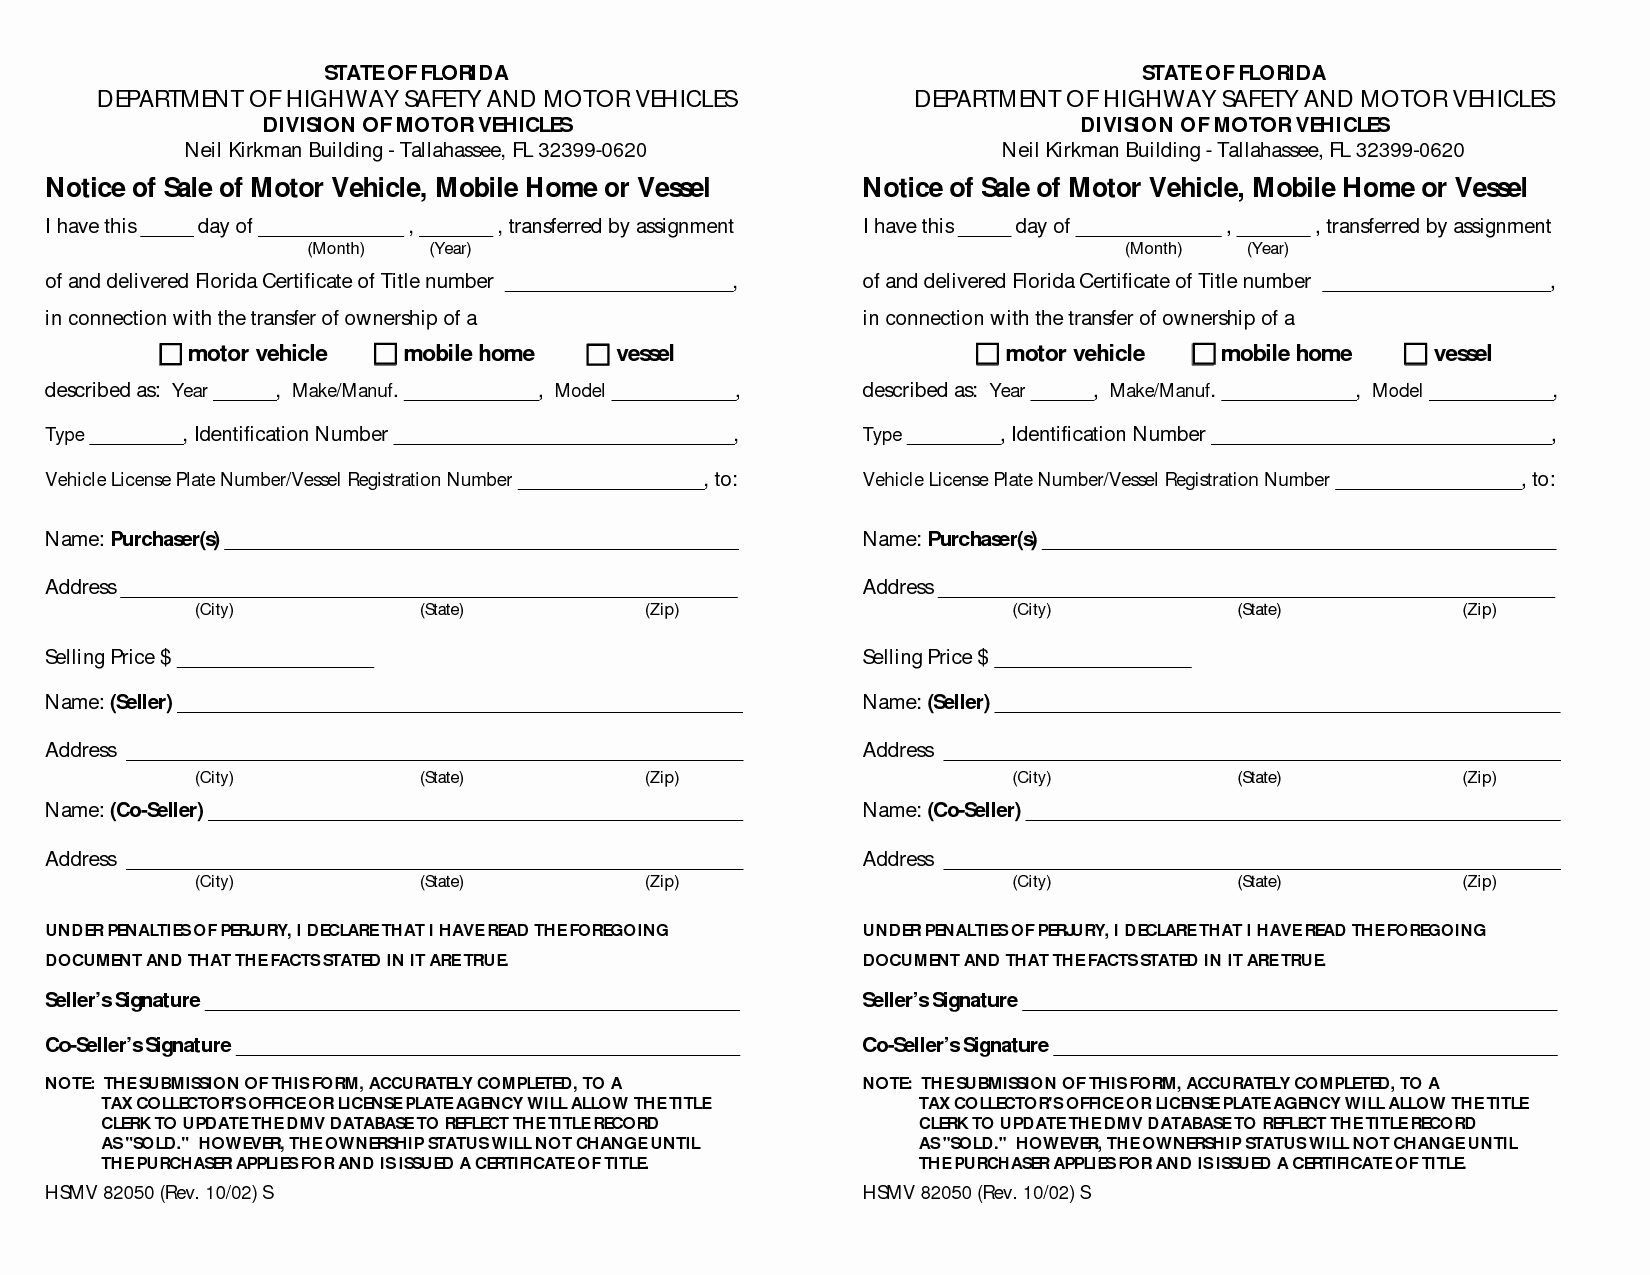 Bill Of Sale Auto Florida Fresh State Florida Bill Sale Motor Vehicle form Bestofhouse